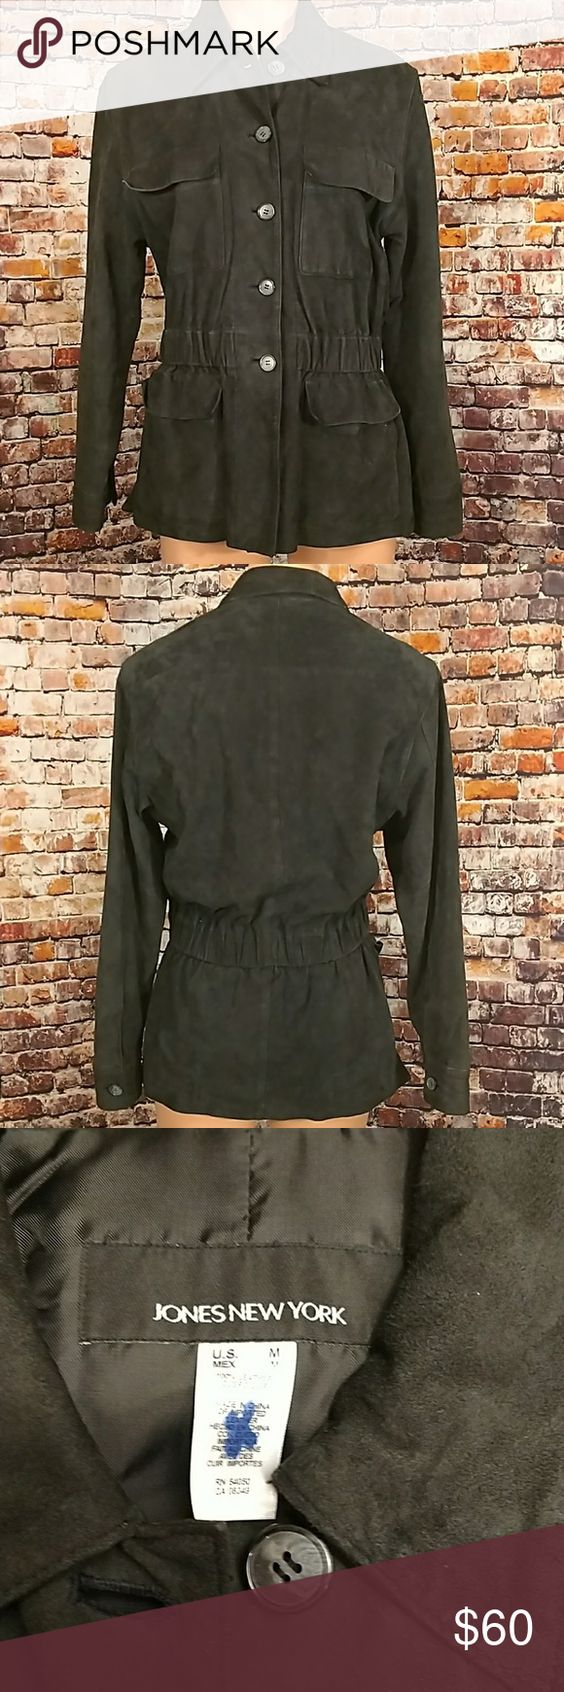 Suede Leather Jacket Black suede leather jacket. Button front, four front flap pockets fully lined , side vents , button cuff, elasticized waist. Jones New York size medium. 19 inches across chest lying flat, 27 1/2 inches long. Jones New York Jackets & Coats